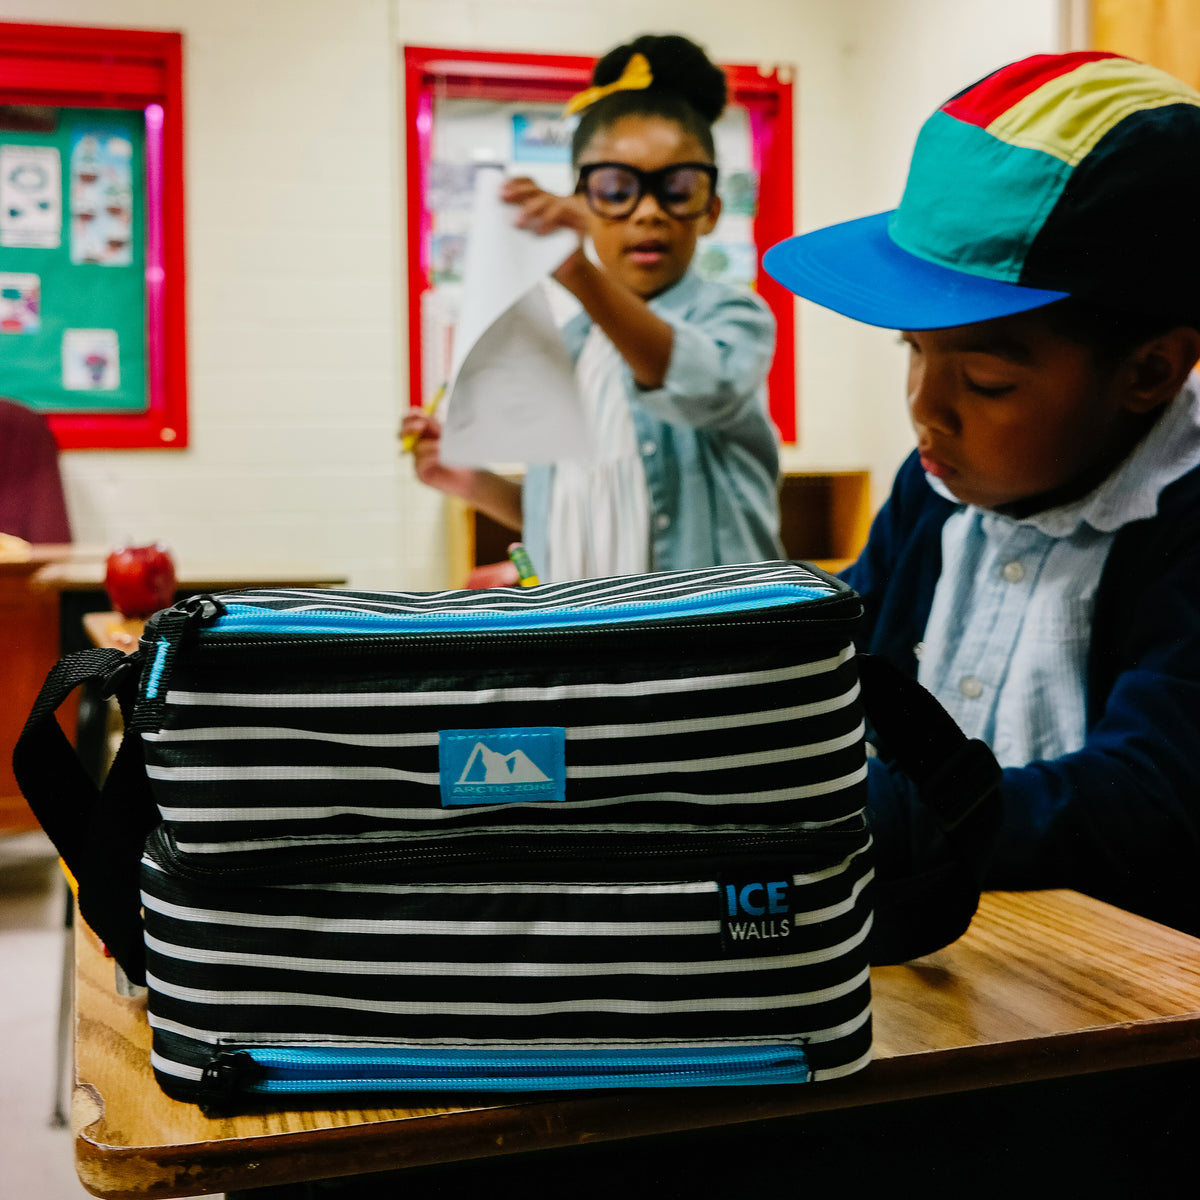 Arctic Zone® Ice Walls® Dual Compartment Lunch Pack - Classic Stripes - Lifestyle, in the classroom